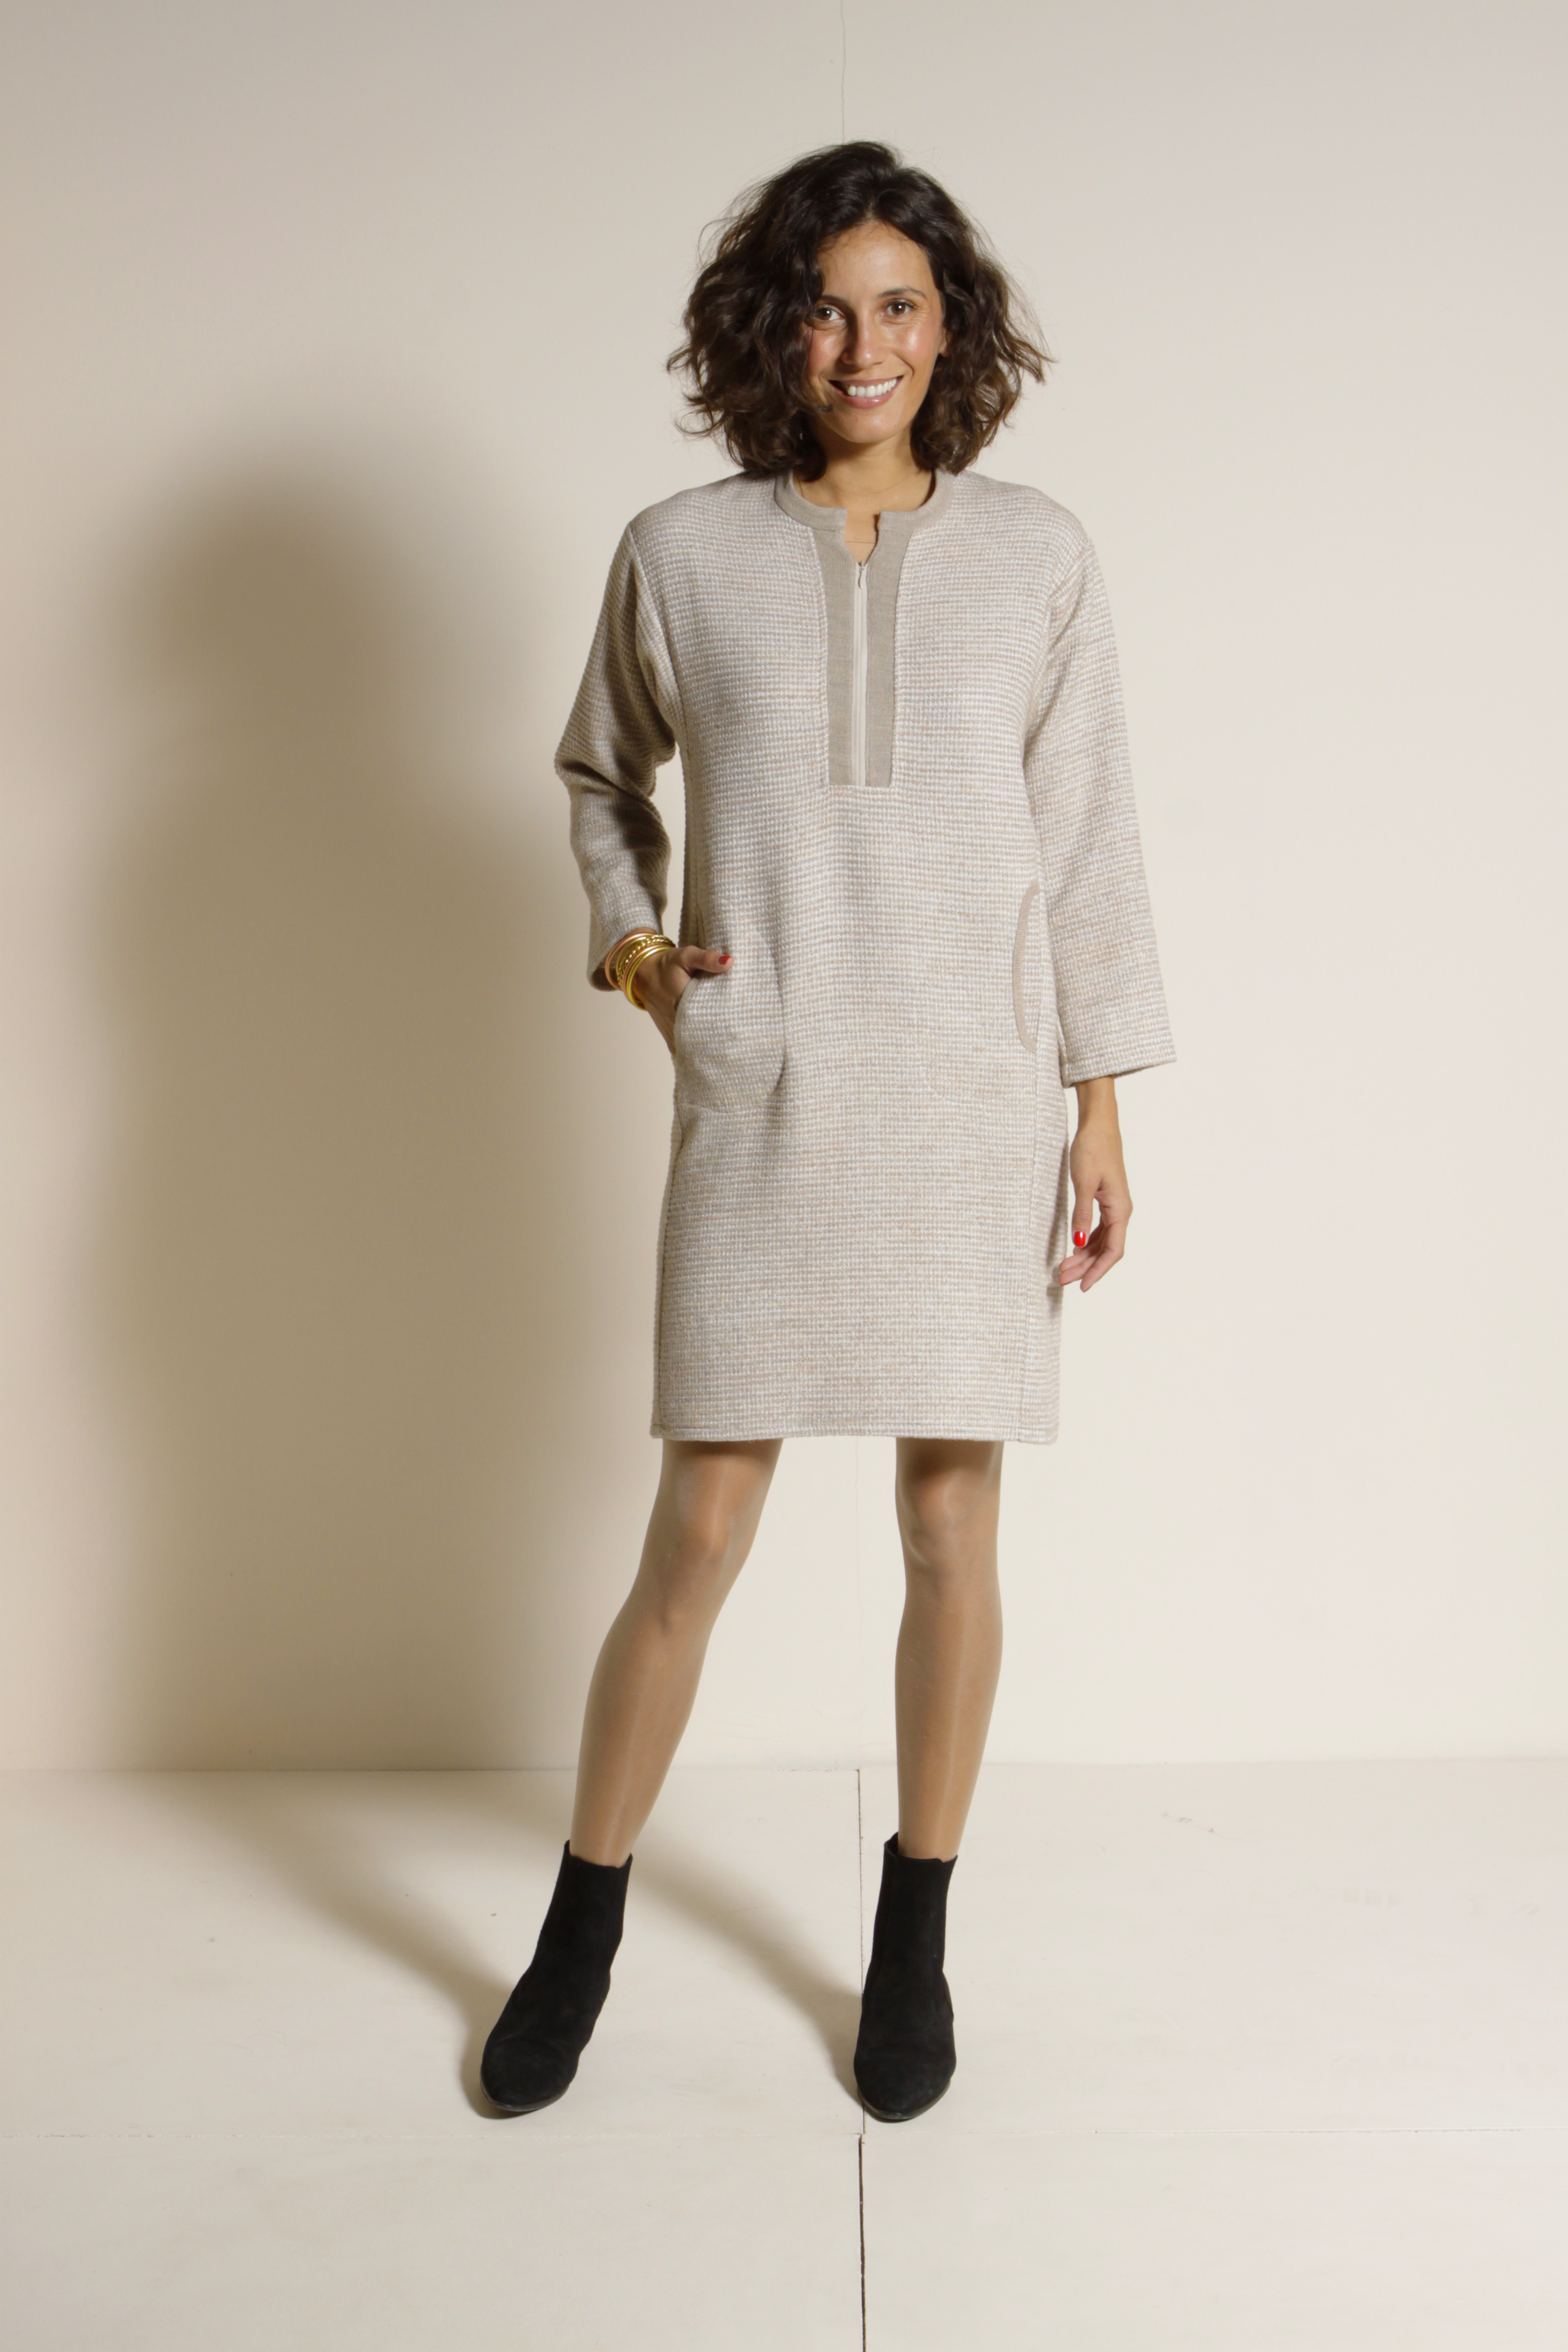 Dress 55% Virgin Wool 35% Viscose 10% Polyester